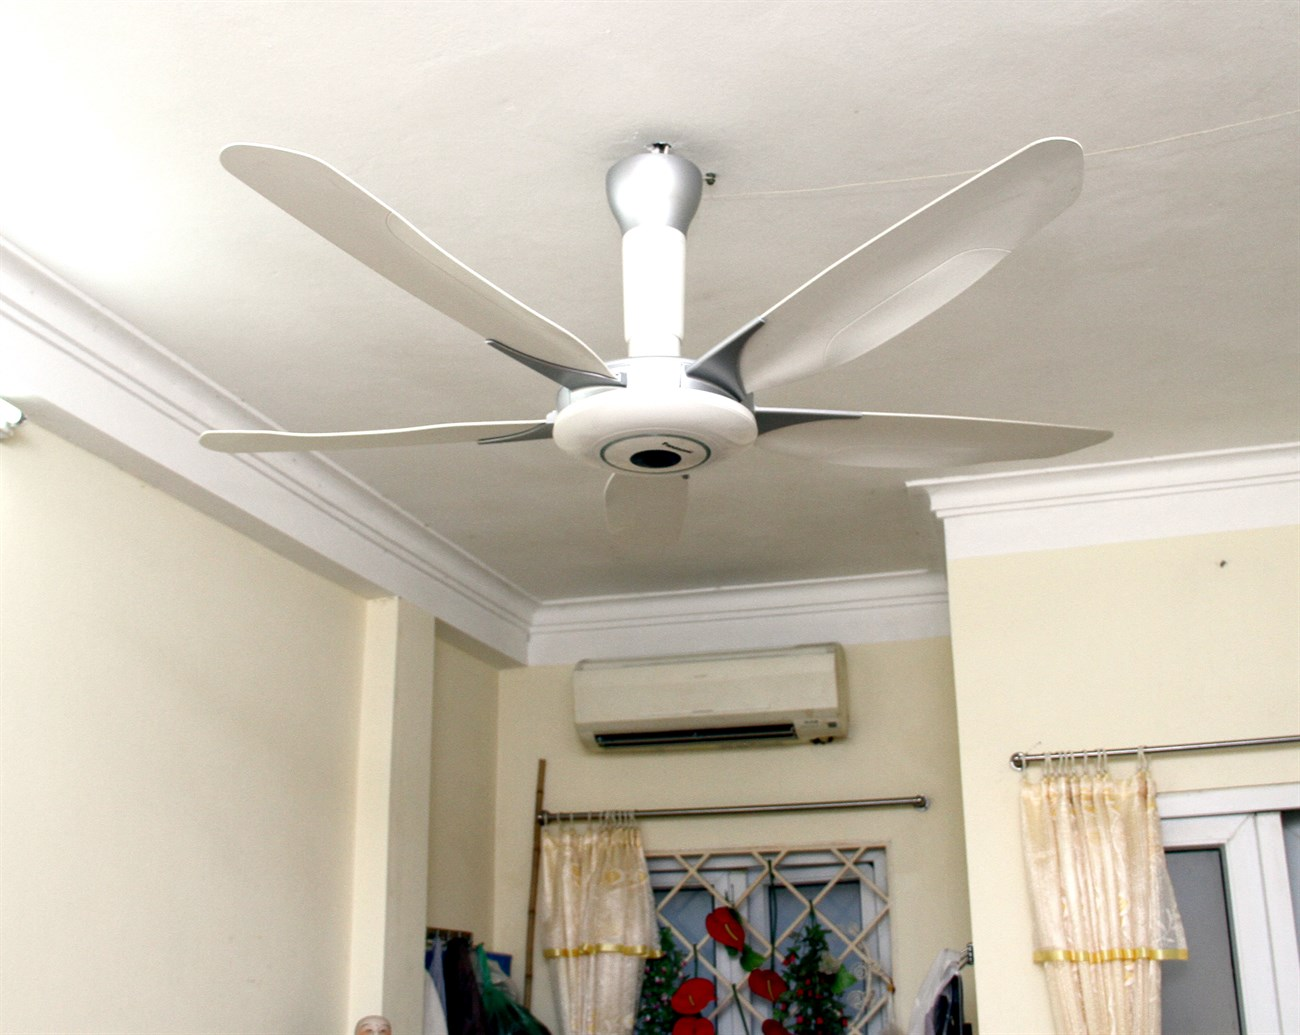 Do not use a powered fan